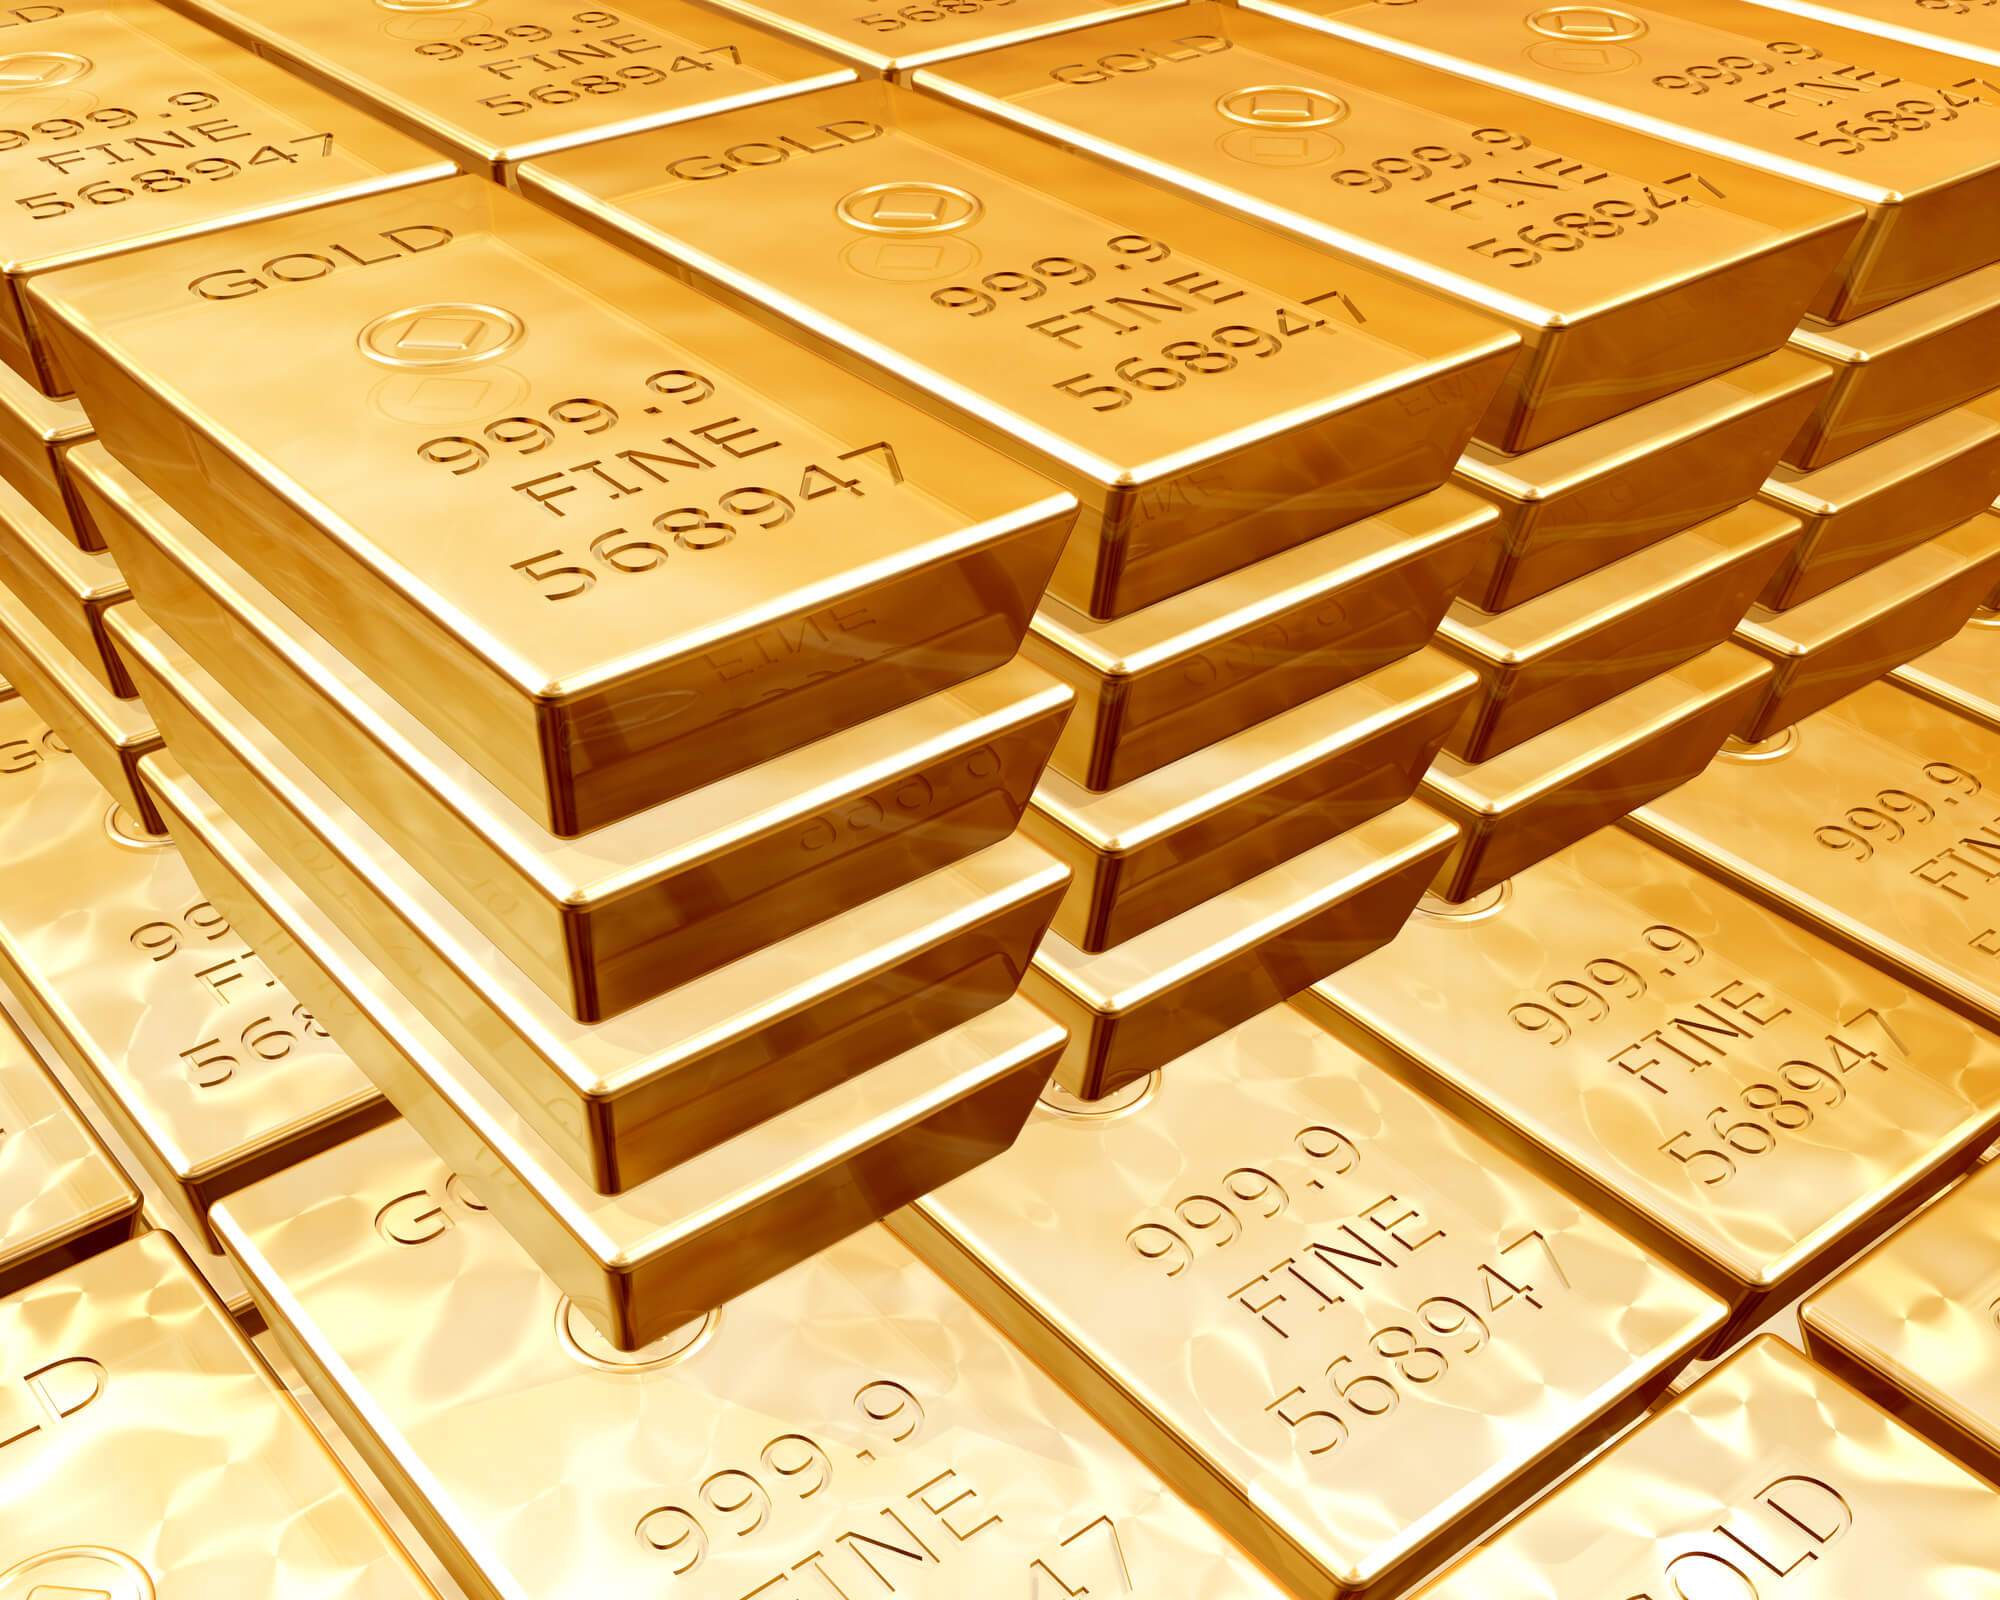 How to buy gold west palm beach?